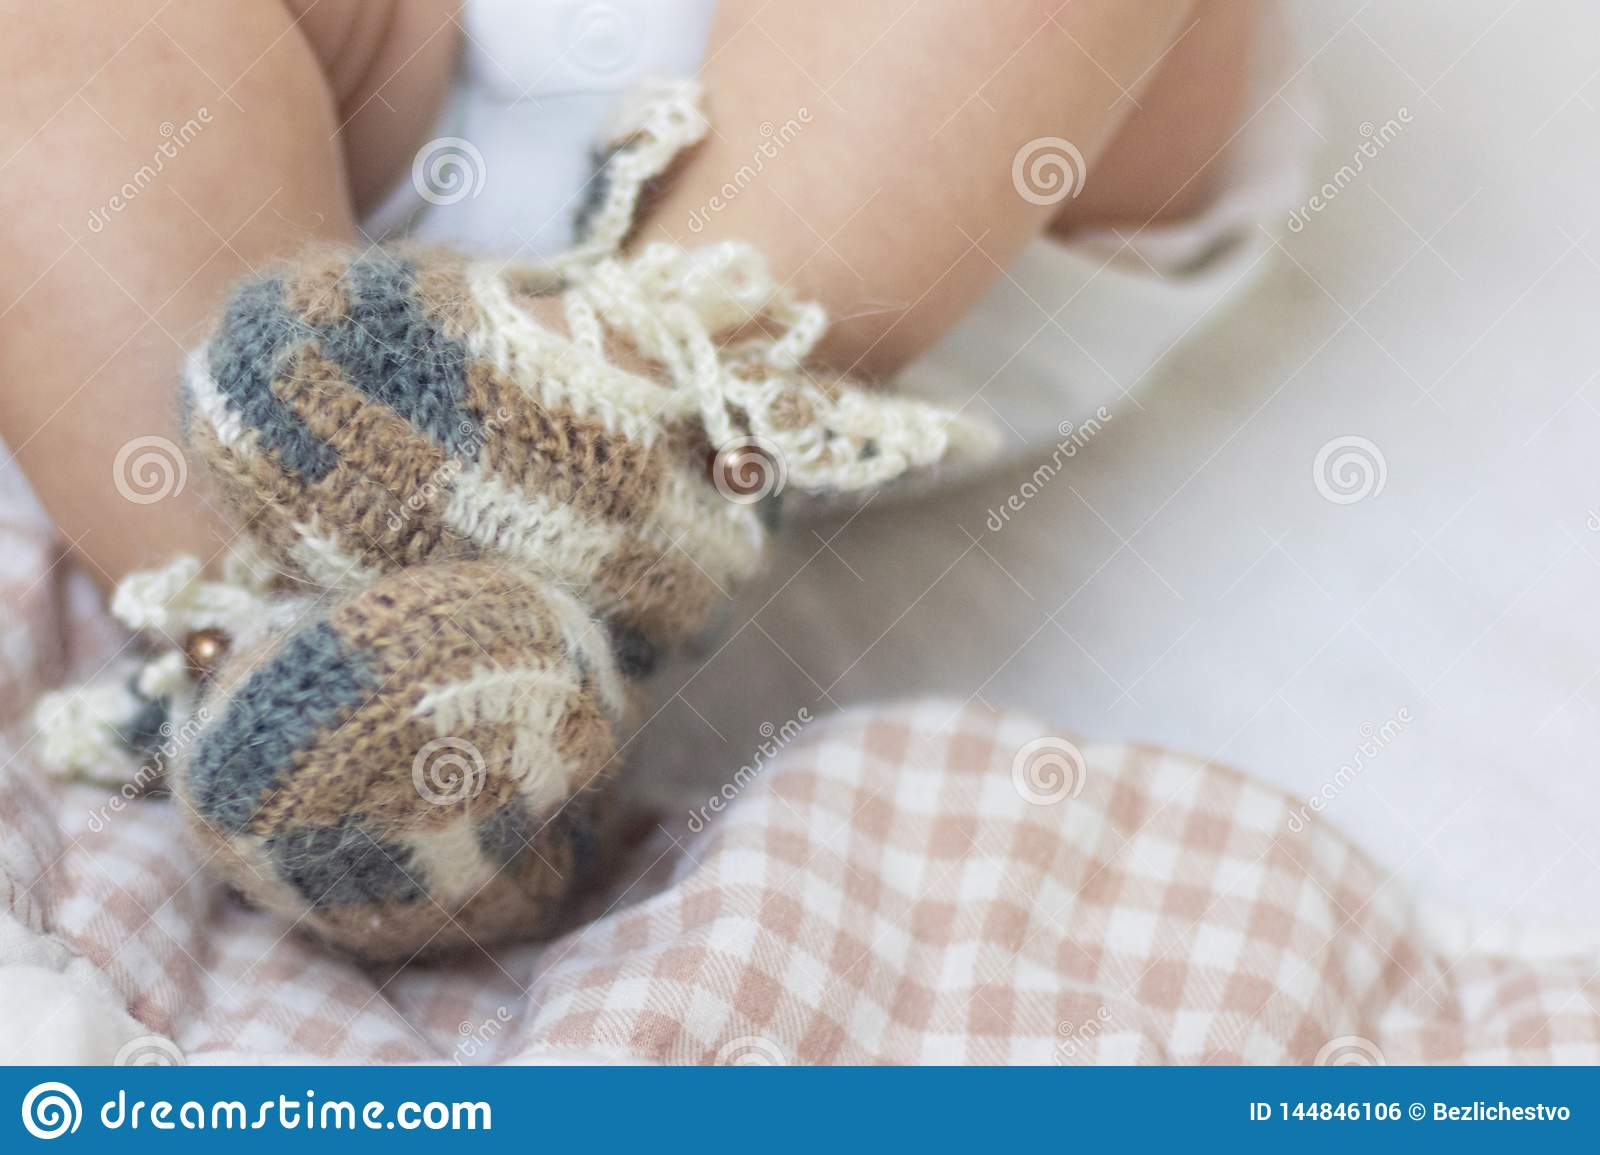 Newborn baby feet close up in wool brown knitted socks booties on a white blanket. The baby is in the crib